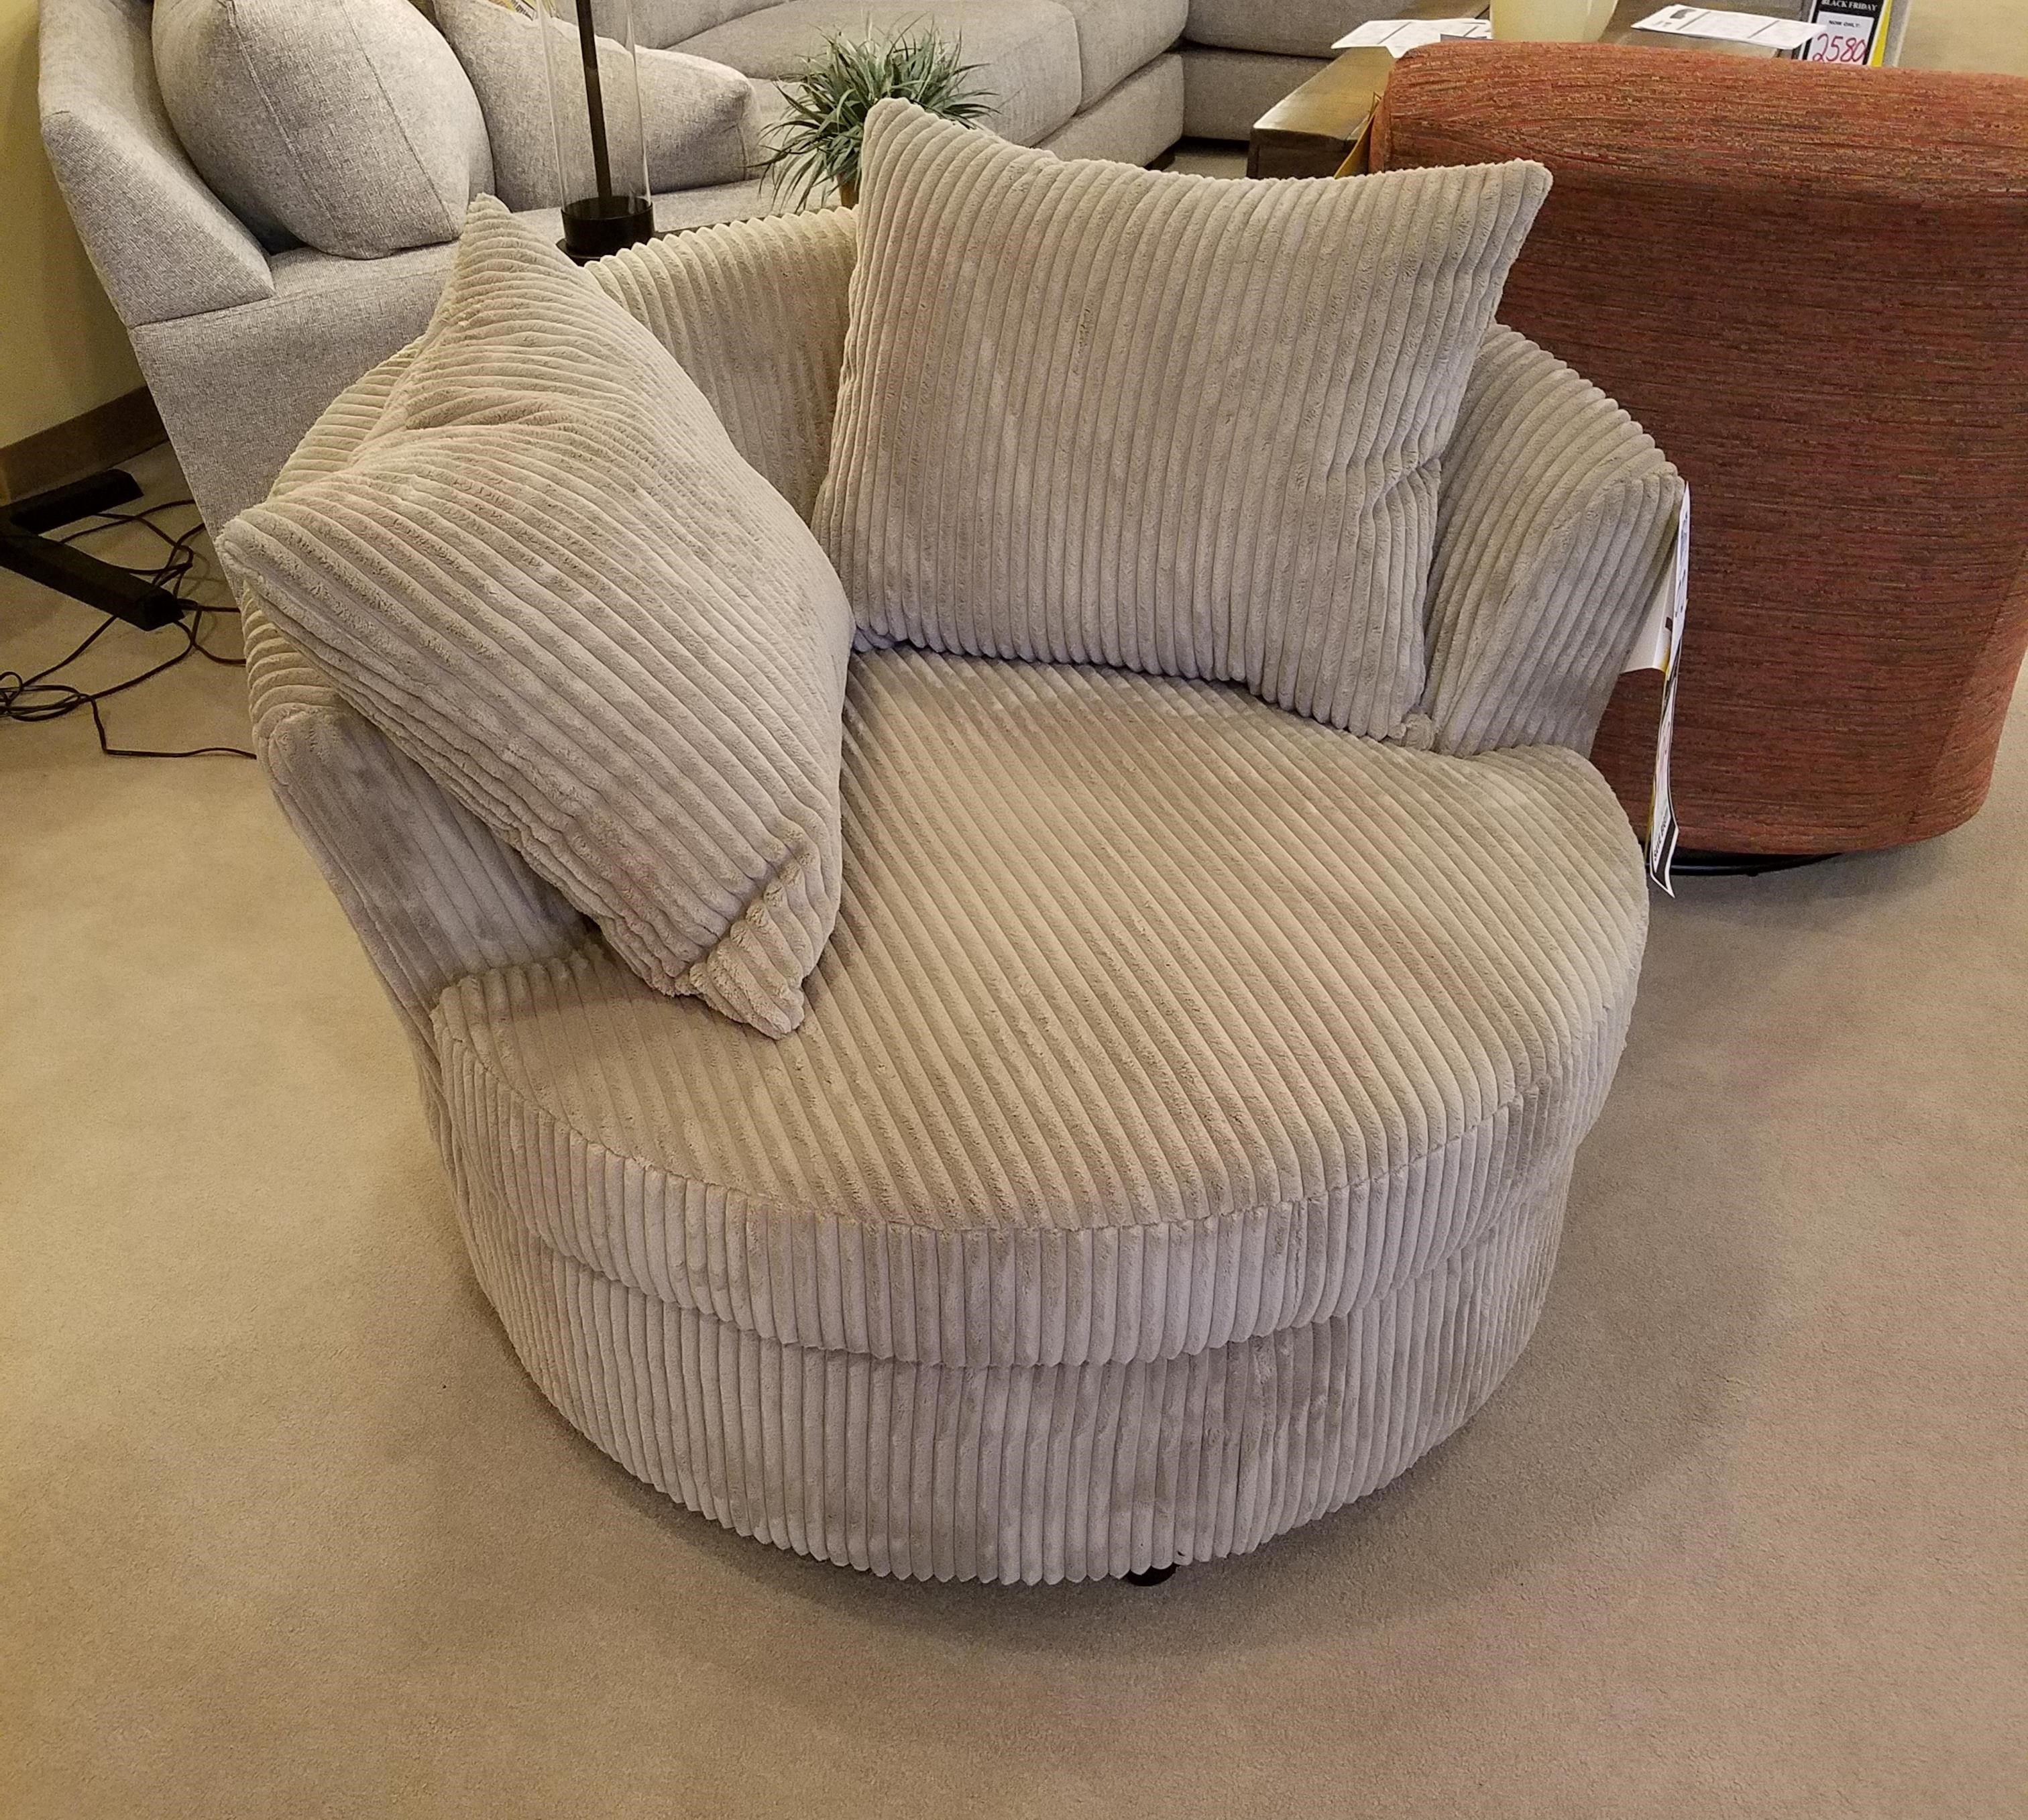 Wondrous Poly Blend Fabric Luxe Mink Colored Microfiber Tan Cuddler And Swivel With Matching Accent Pillows Pdpeps Interior Chair Design Pdpepsorg